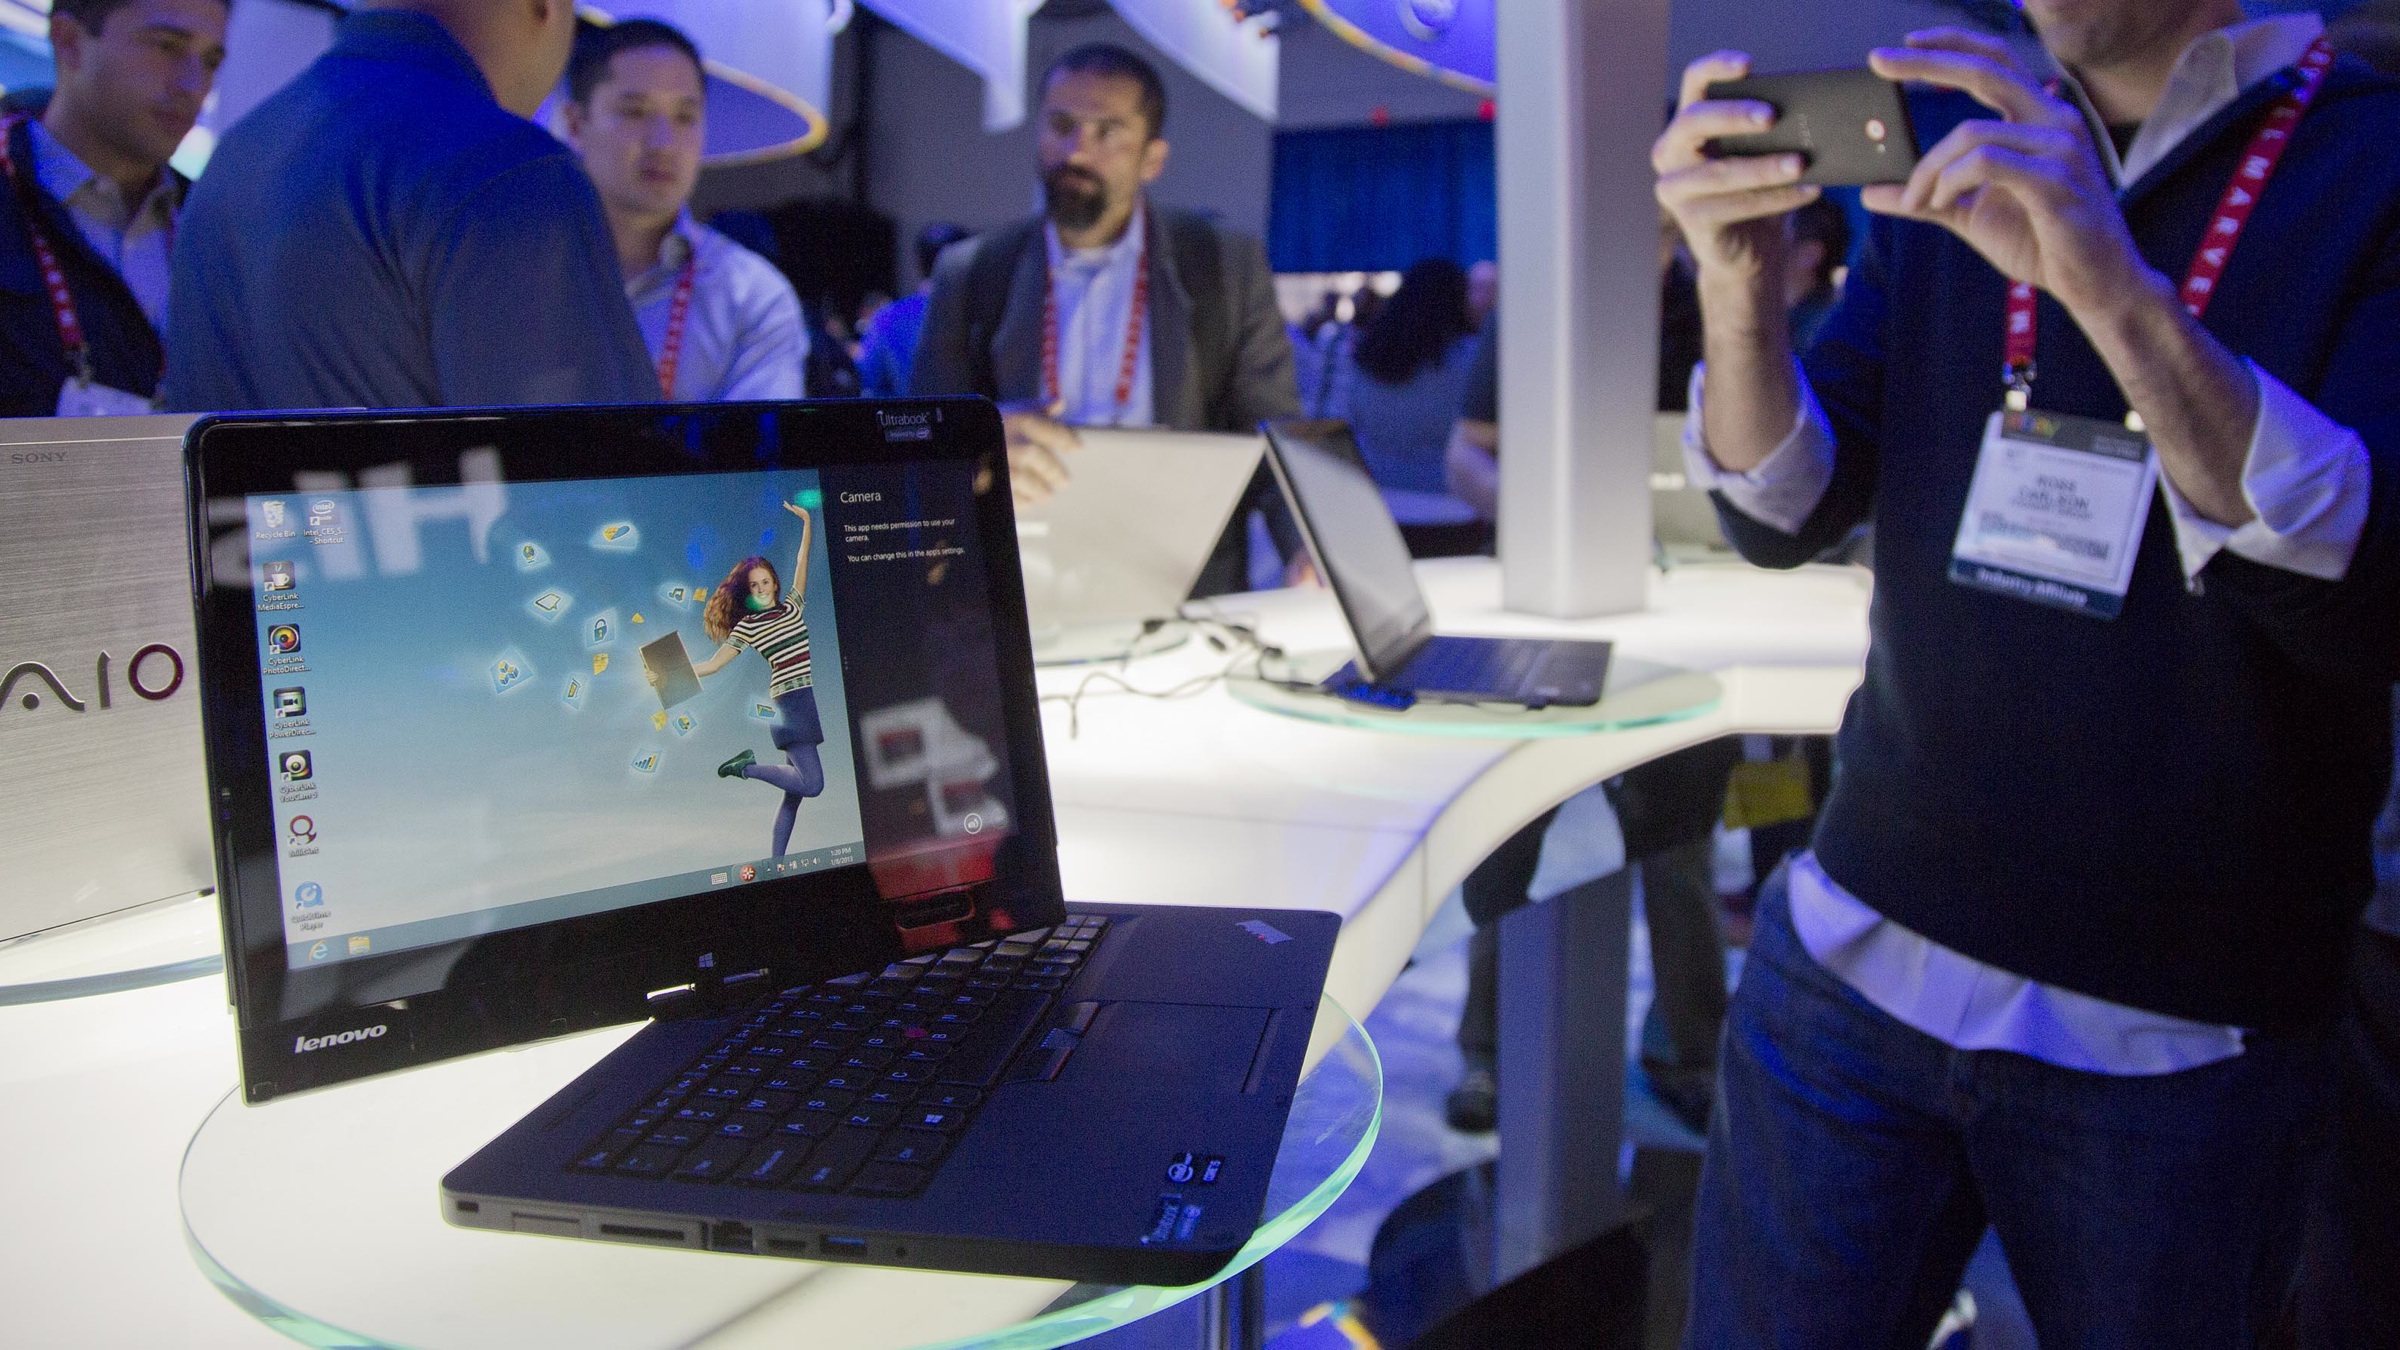 Convention goers photograph a Lenovo convertible Ultrabook at the Consumer Electronics Show, Tuesday, Jan. 8, 2013, in Las Vegas. The Ultrabook is a tablet that converts to a PC. (AP Photo/Julie Jacobson)